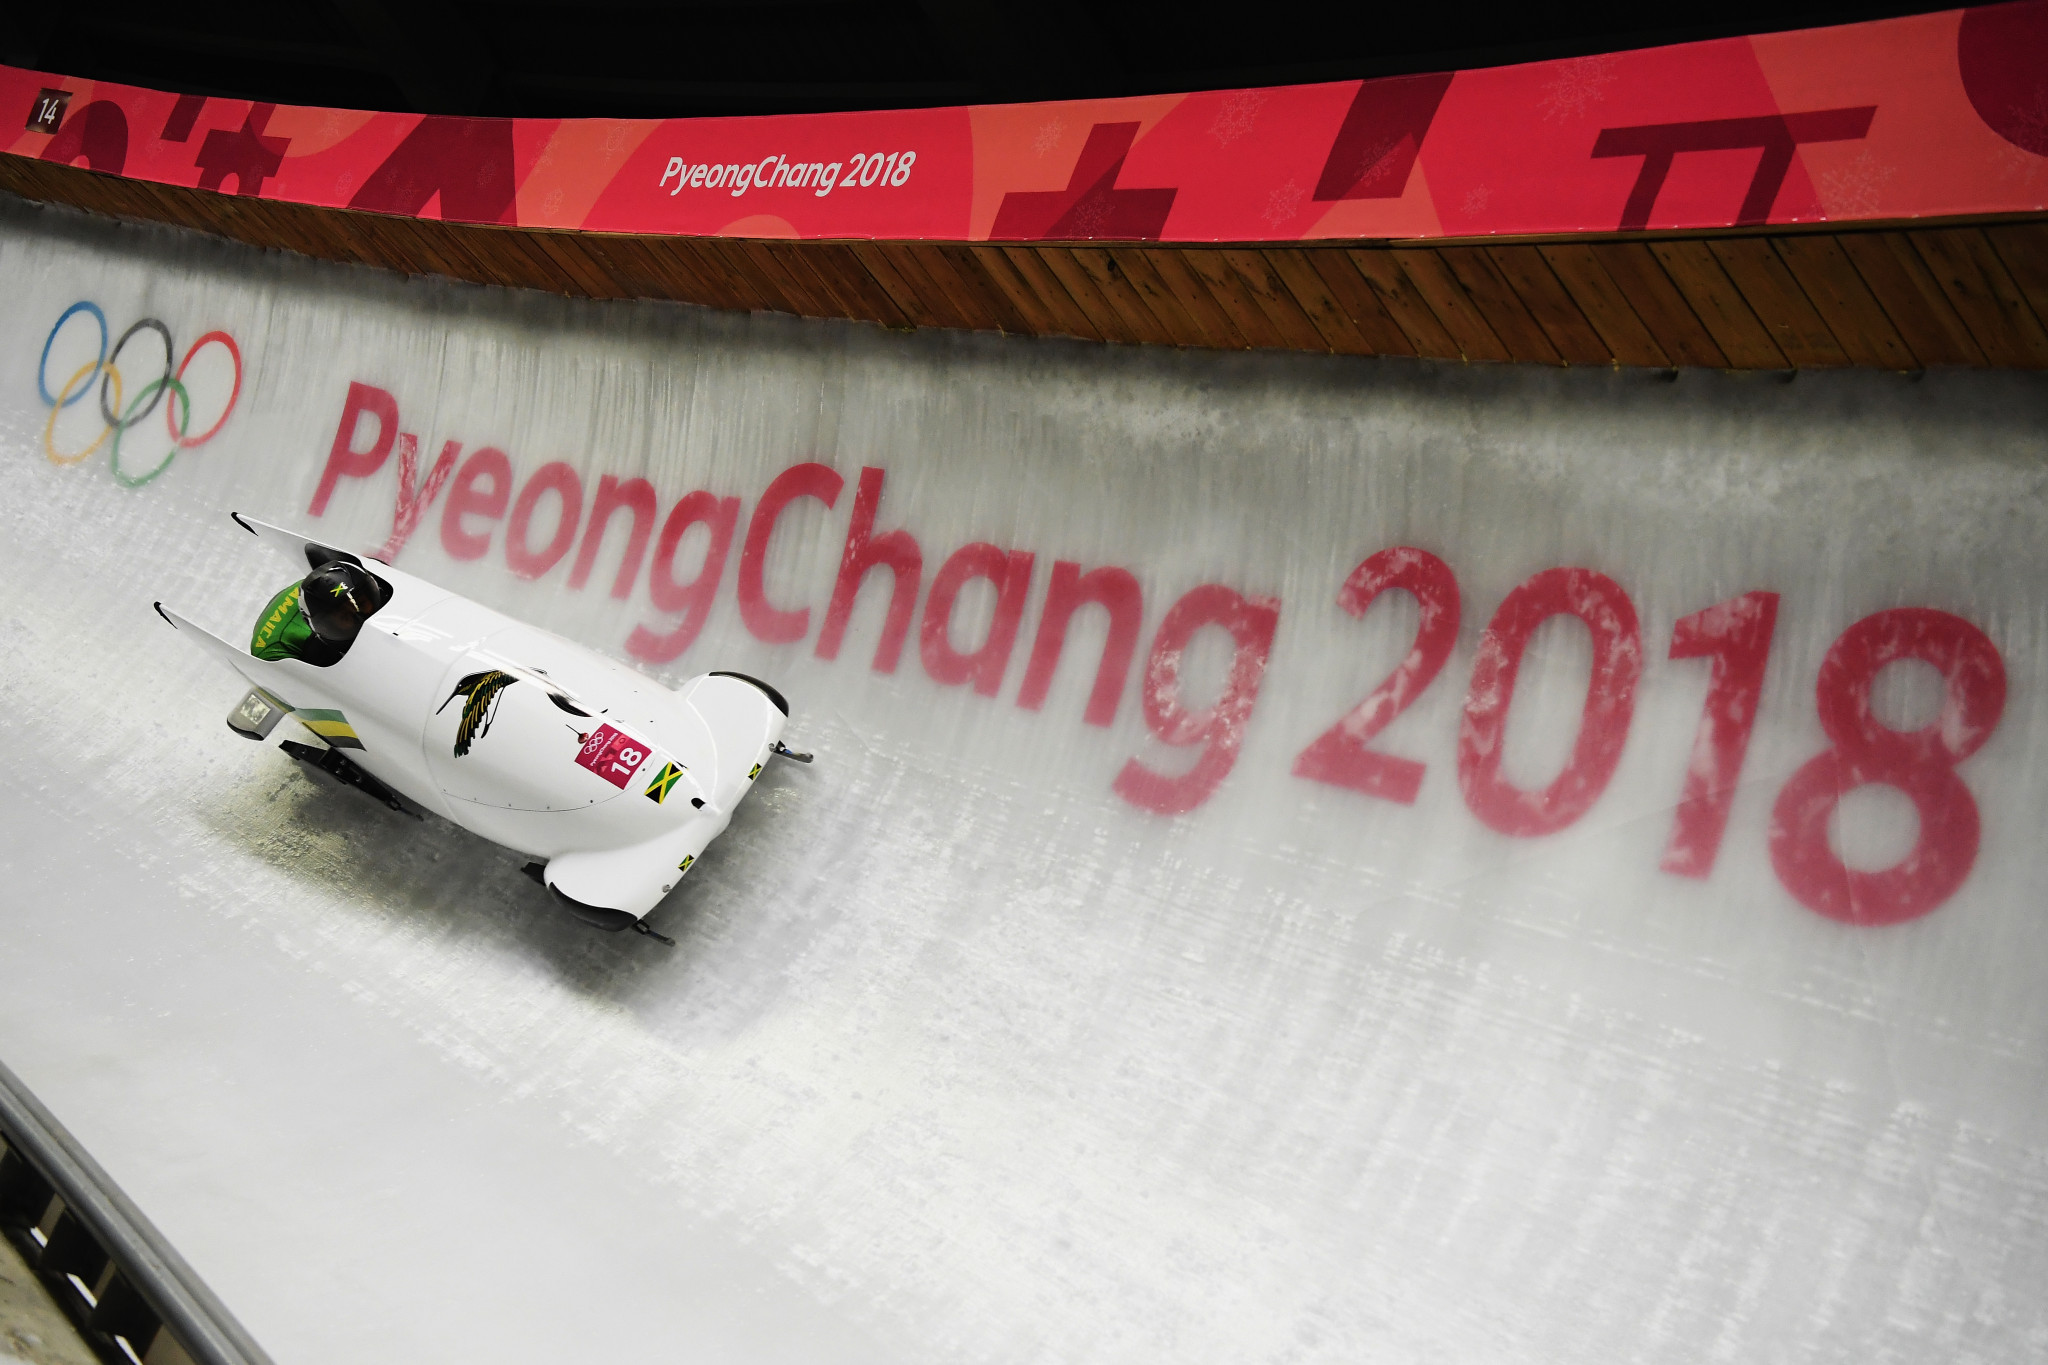 Jazmine Fenlator-Victorian and Carrie Russell were the members of the two-woman team which finished 19th at Pyeongchang 2018 as Jamaica's women made their Olympic bobsleigh debut ©Getty Images